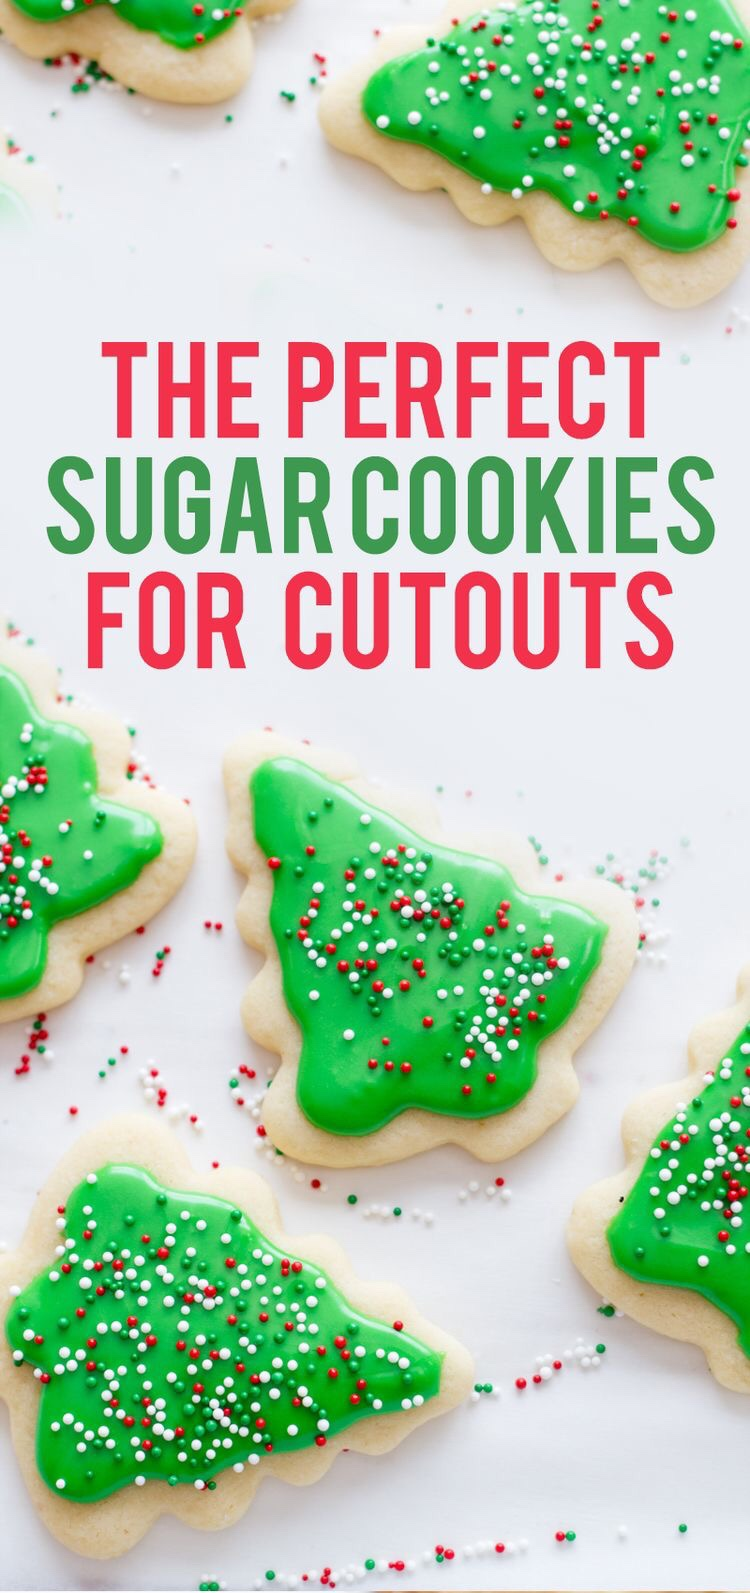 The-Perfect-Sugar-Cookies-For-Cutouts